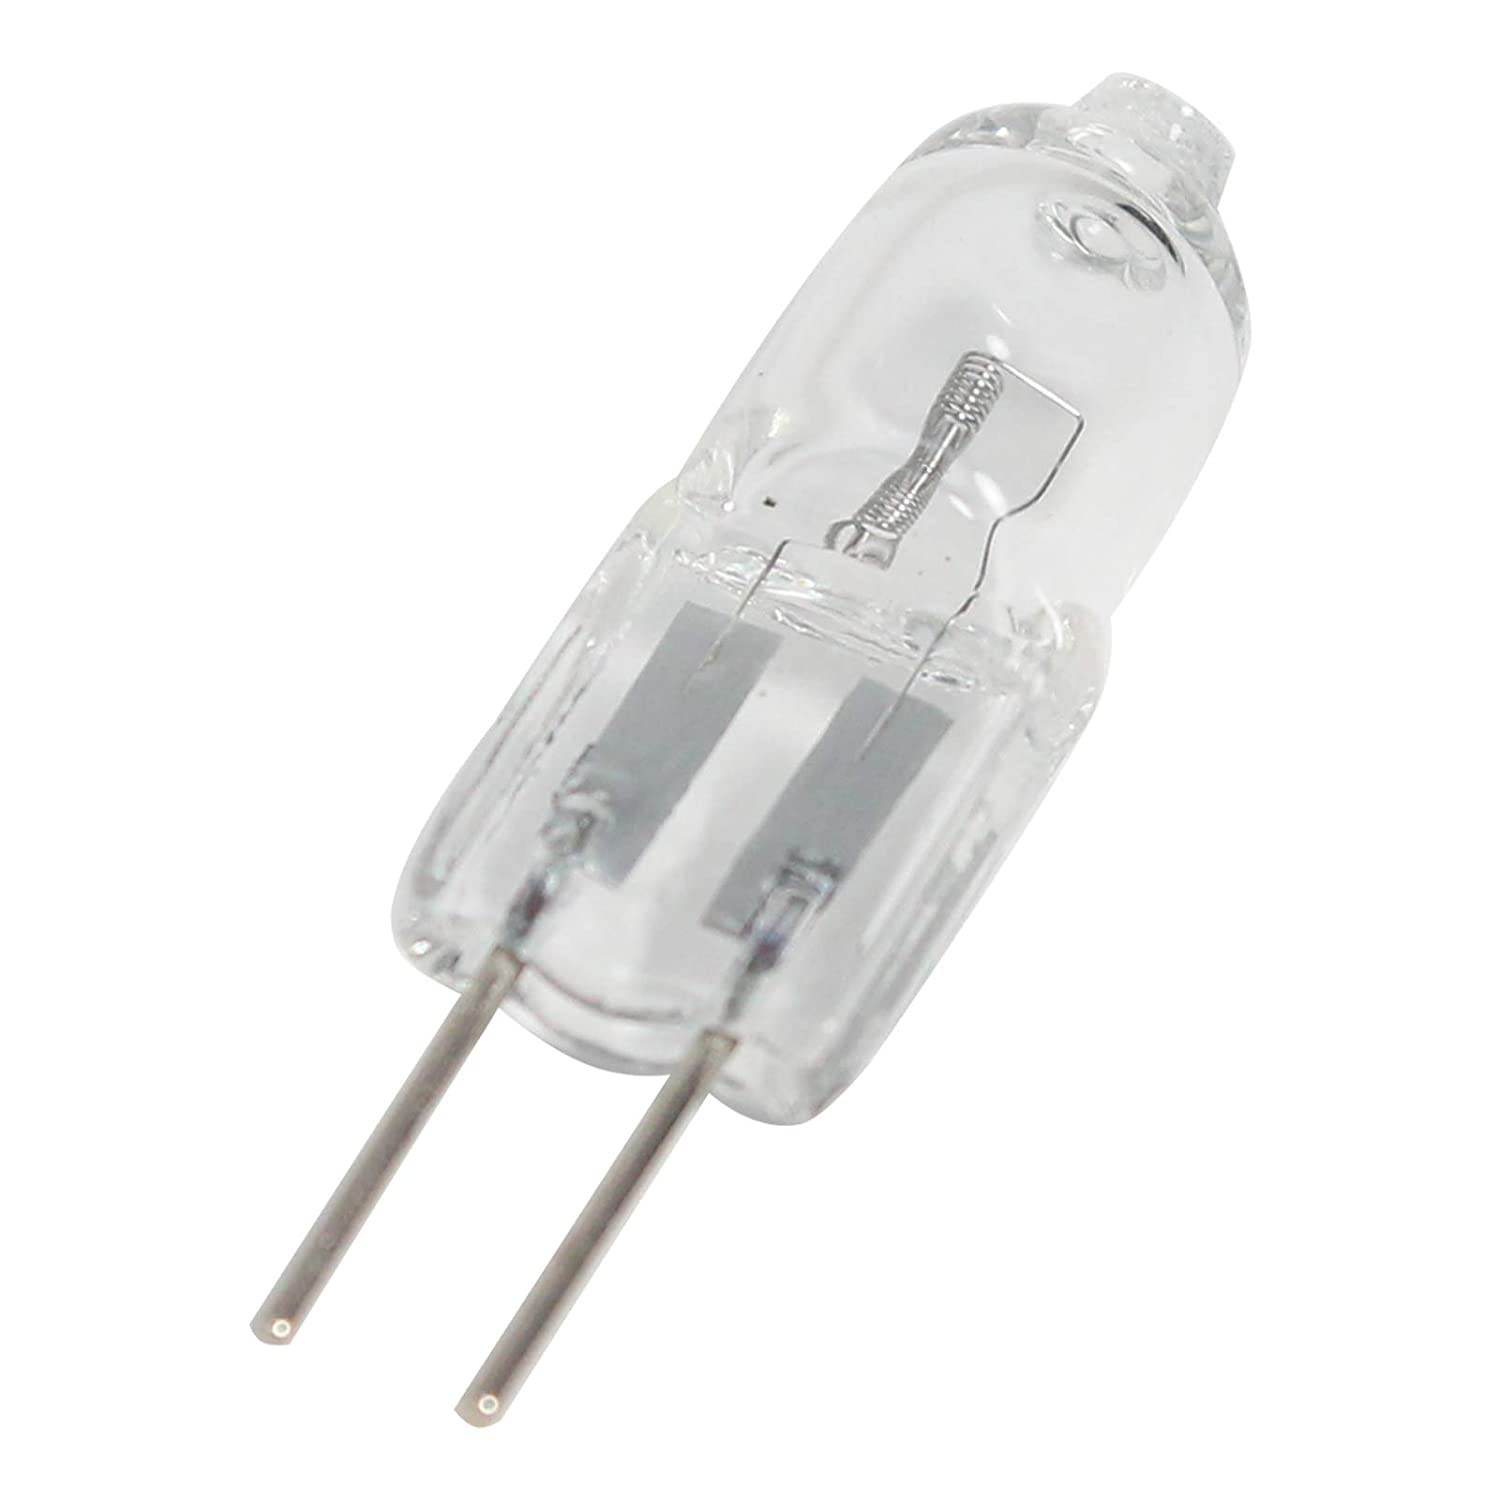 Compatible with Broan SB02300891 Light Bulb 6-Pack SB02300891 Light Bulb Replacement for Kenmore//Sears 23354363200 Range Hood